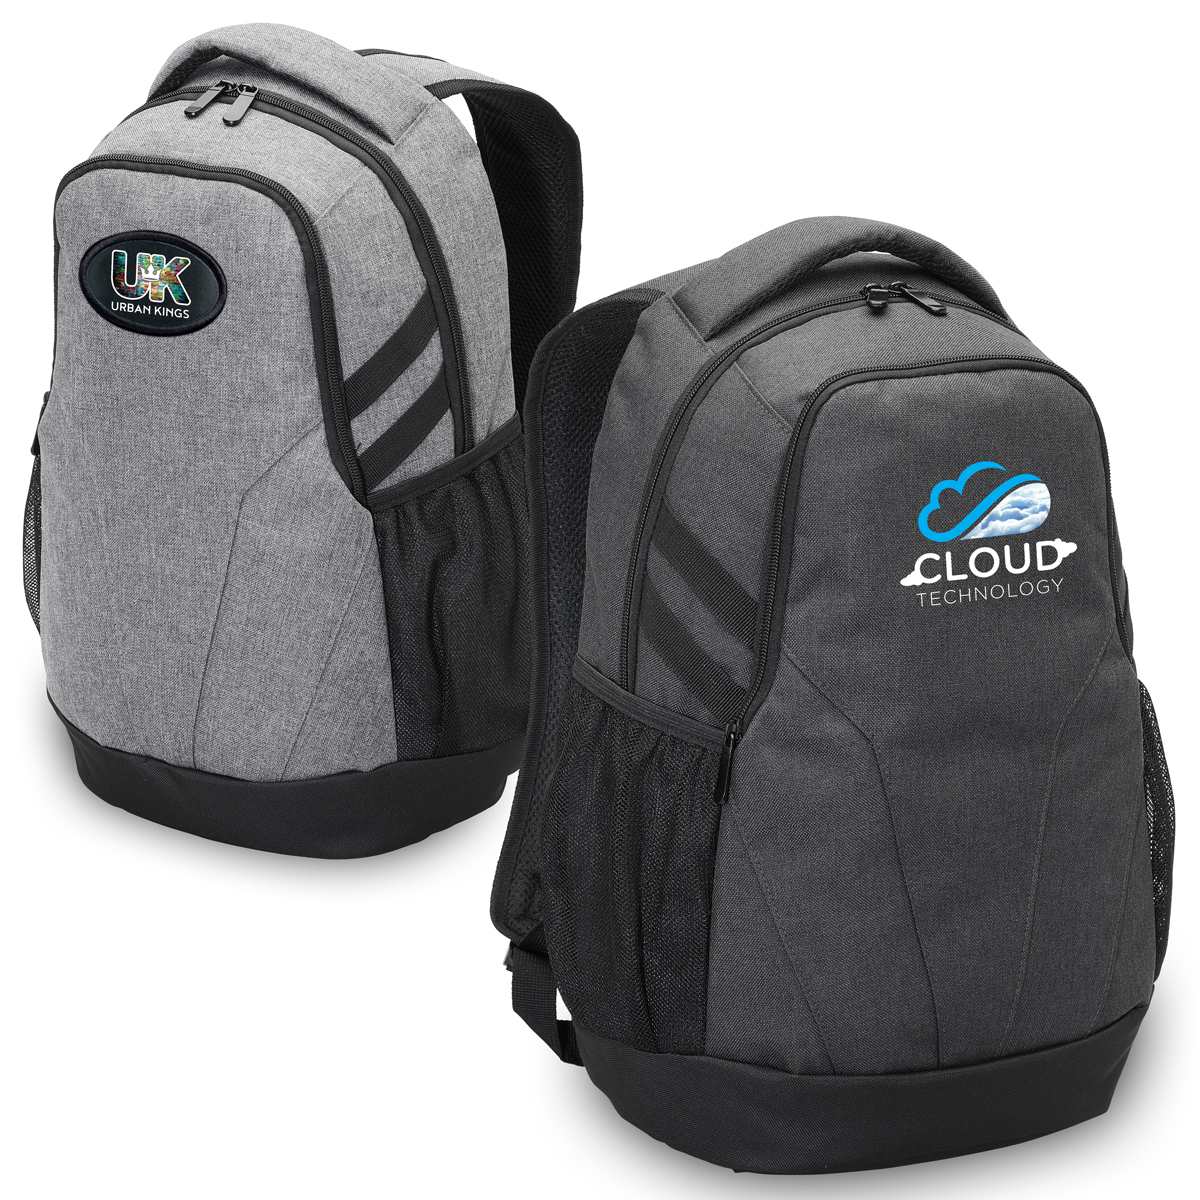 Enterprise Laptop Backpack